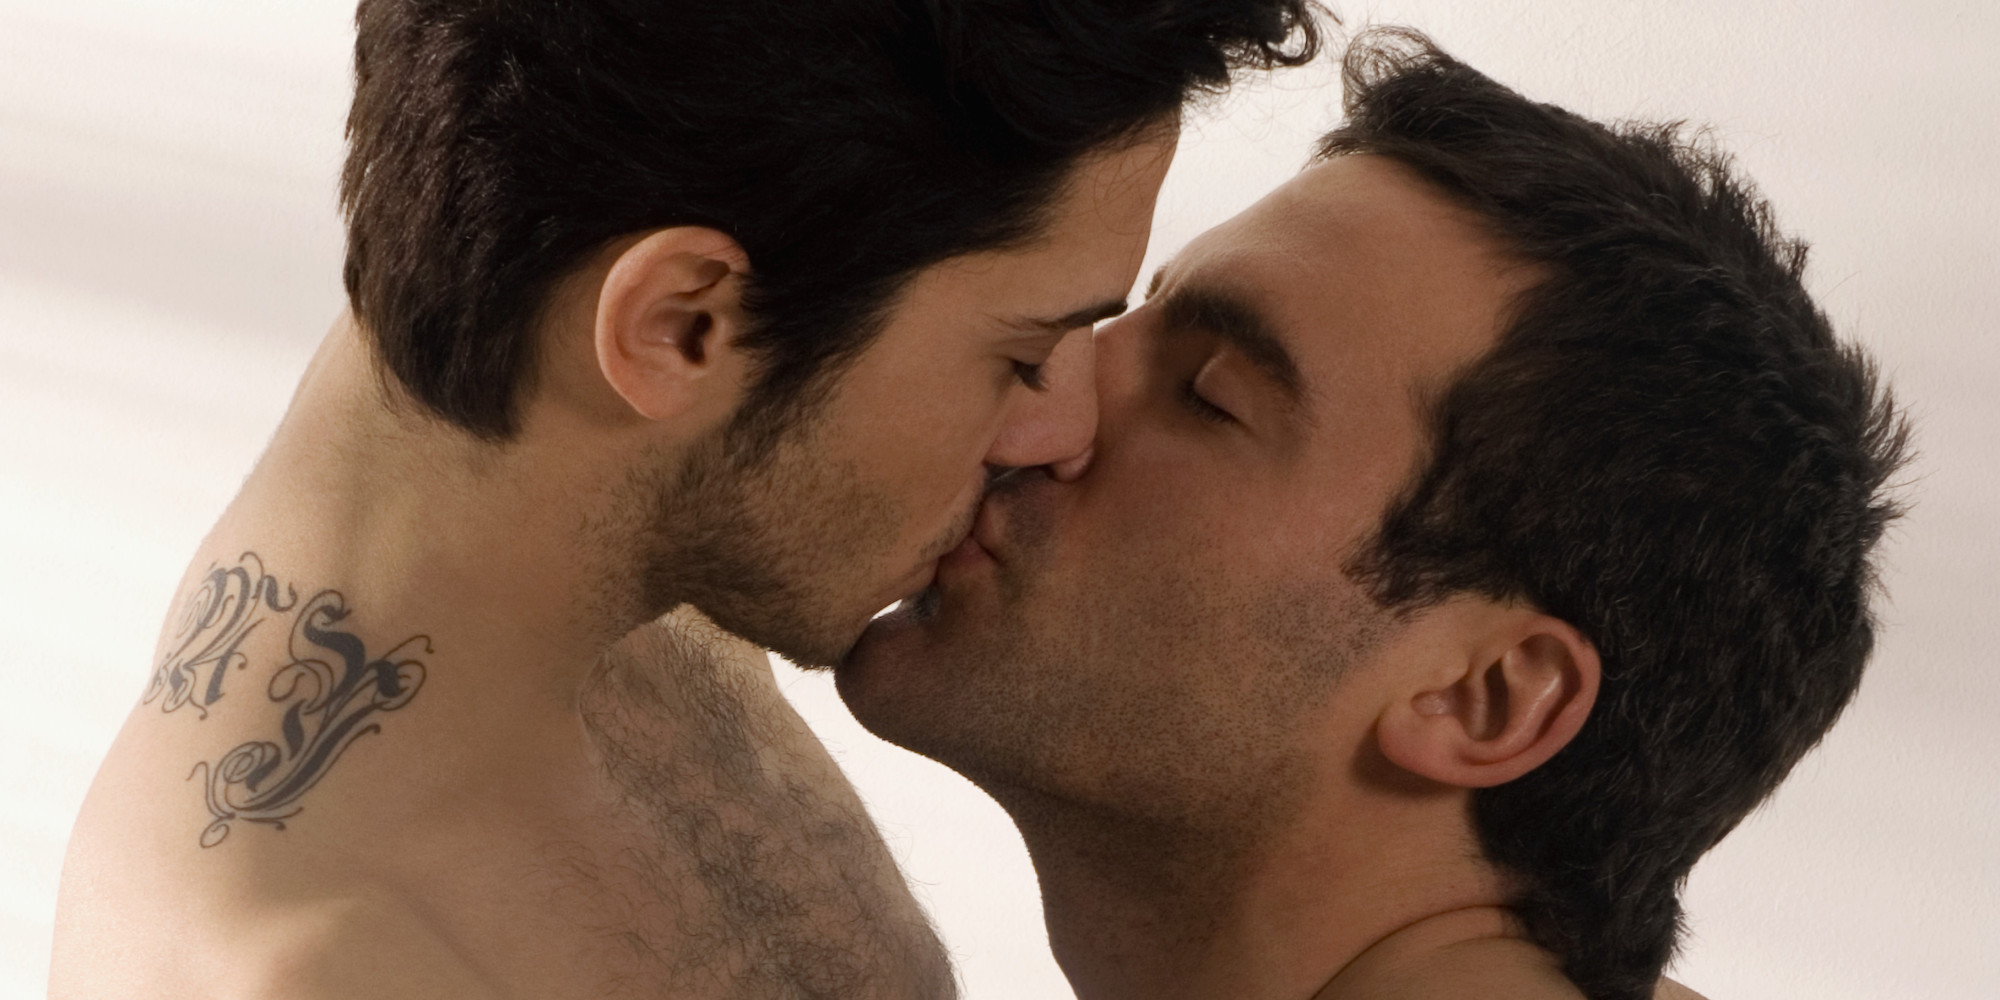 from Maximus young gay kiss sex picture